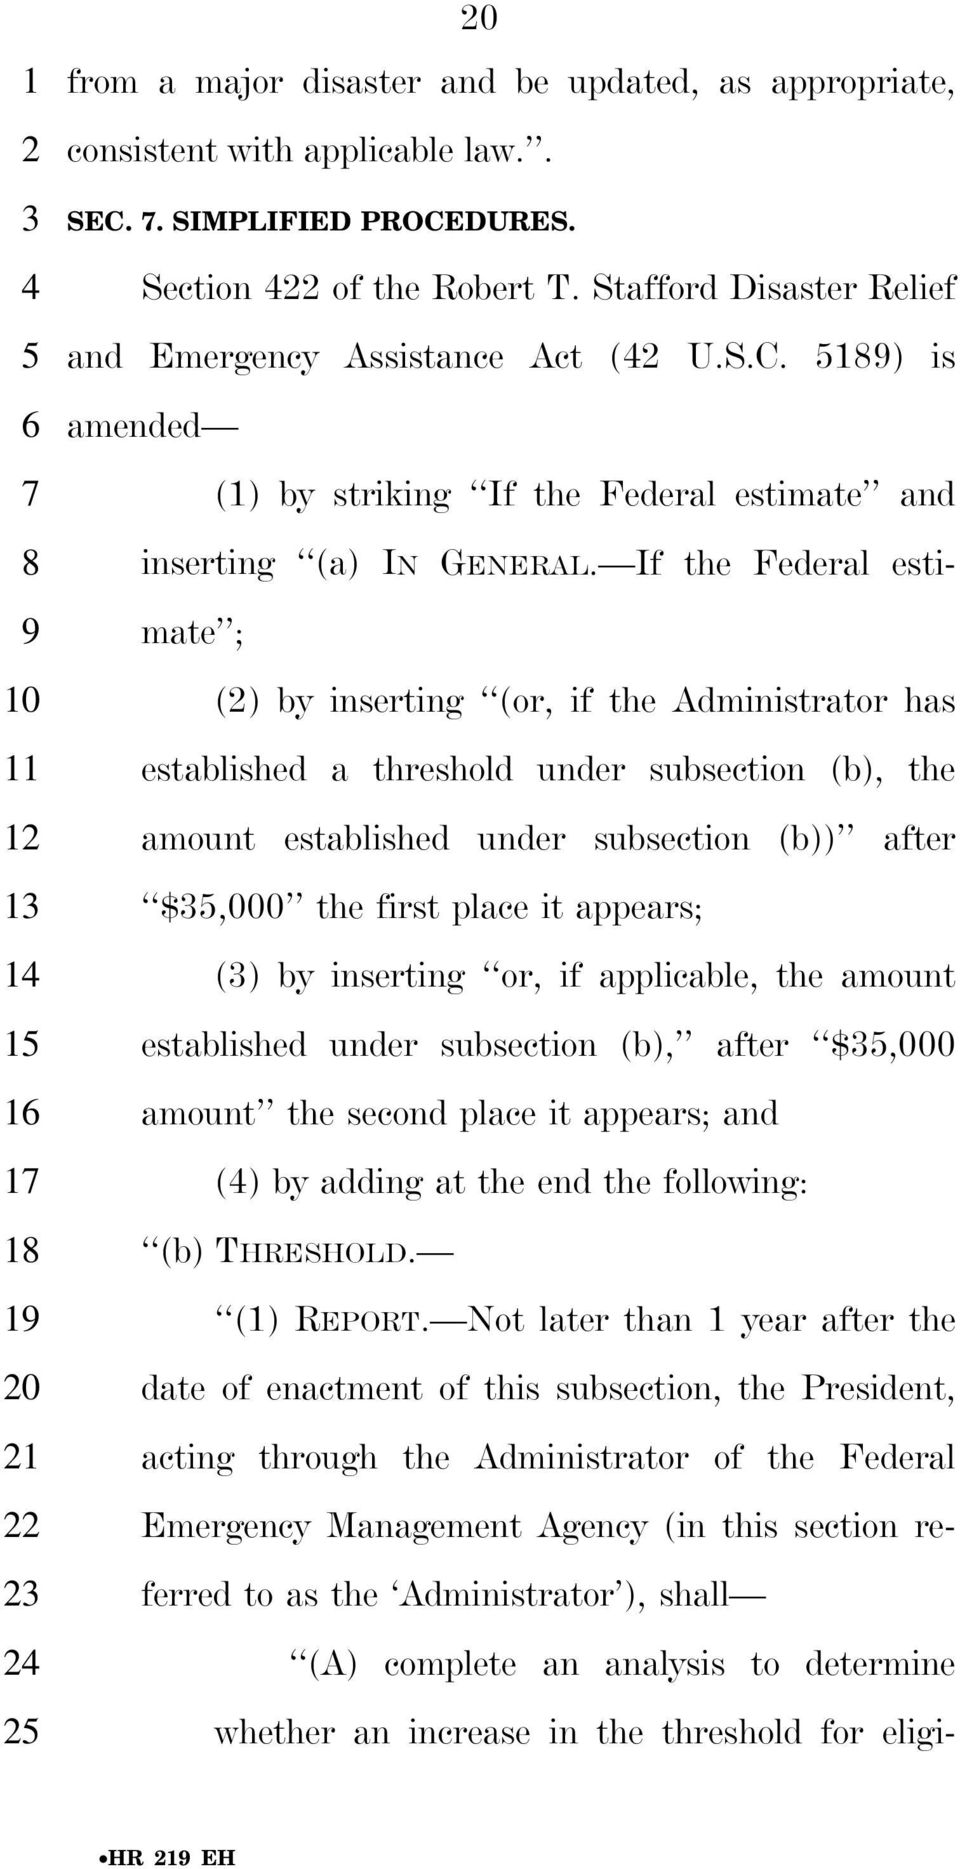 If the Federal estimate ; () by inserting (or, if the Administrator has established a threshold under subsection (b), the amount established under subsection (b)) after $,000 the first place it